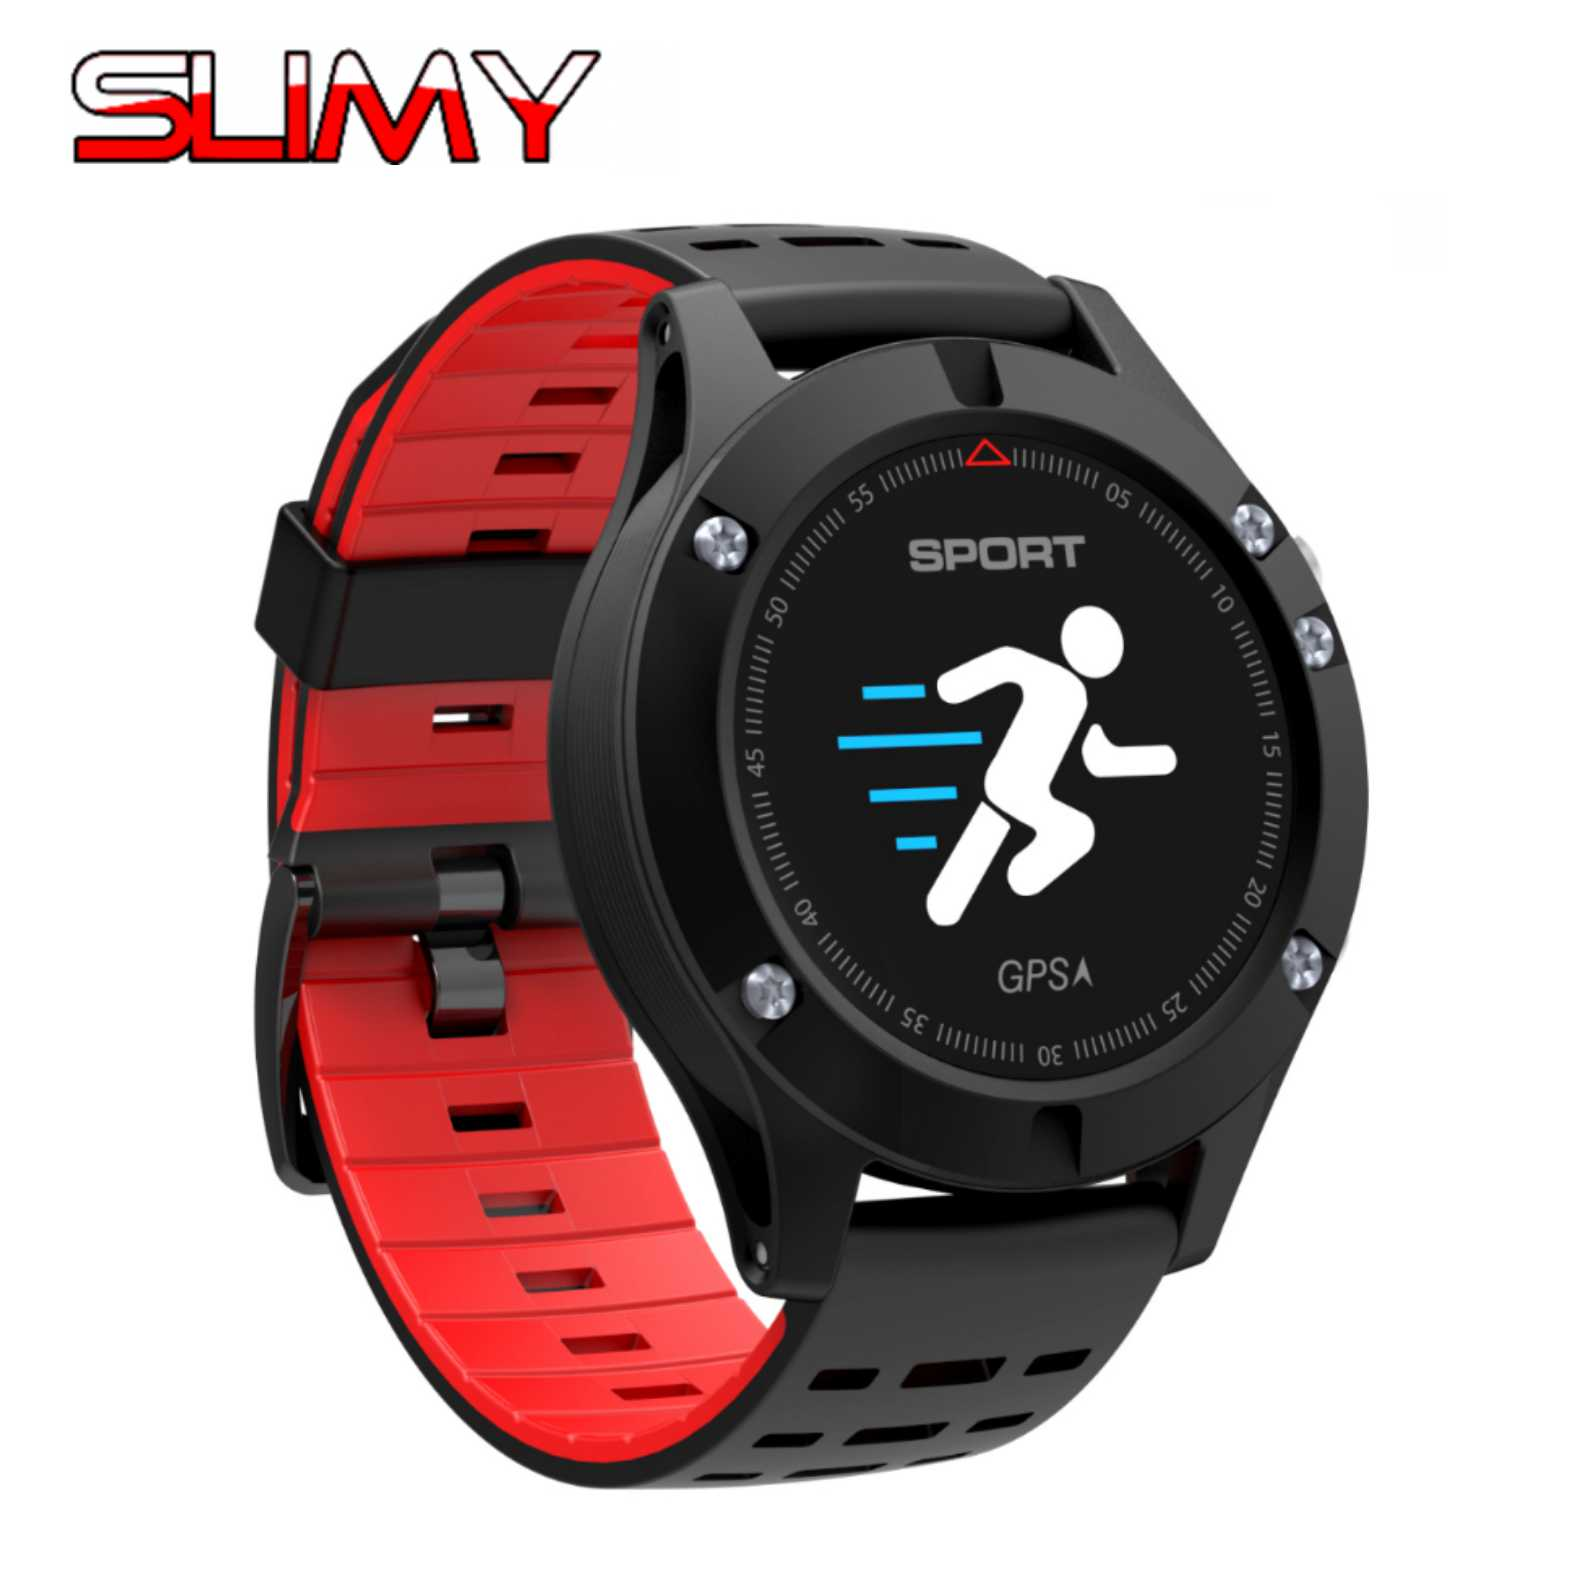 Slimy F5 GPS Smart Watch Altimeter Barometer Thermometer Bluetooth 4.0 Smartwatch Wearable Devices for IOS Android in Stock wearables electronic watches altimeter barometer sleep monitor g sensor watch smart android wear smart watch ios bluetooth